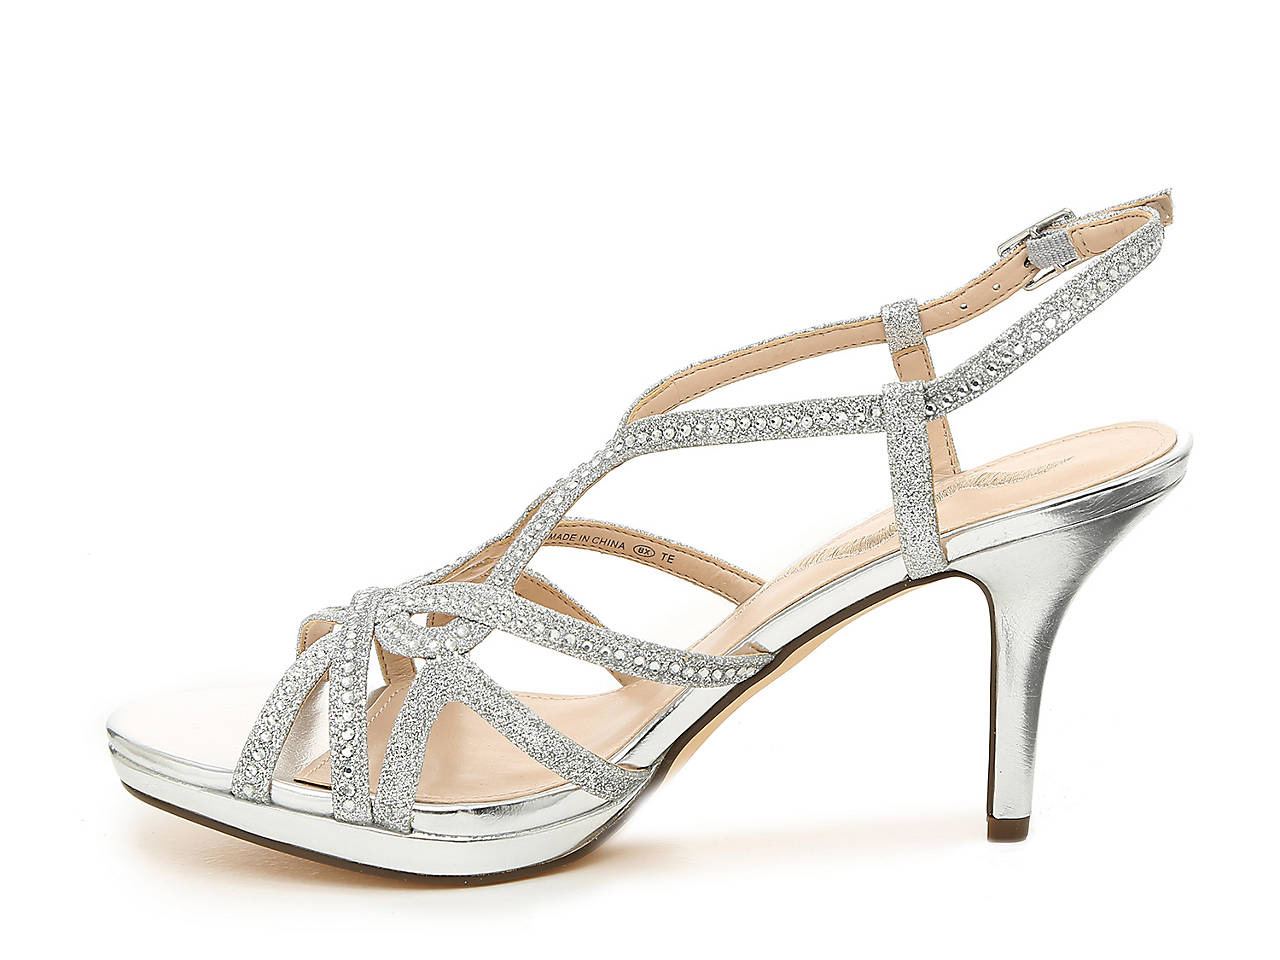 9e382ff84bcf Nina Veralee Sandal Women s Shoes